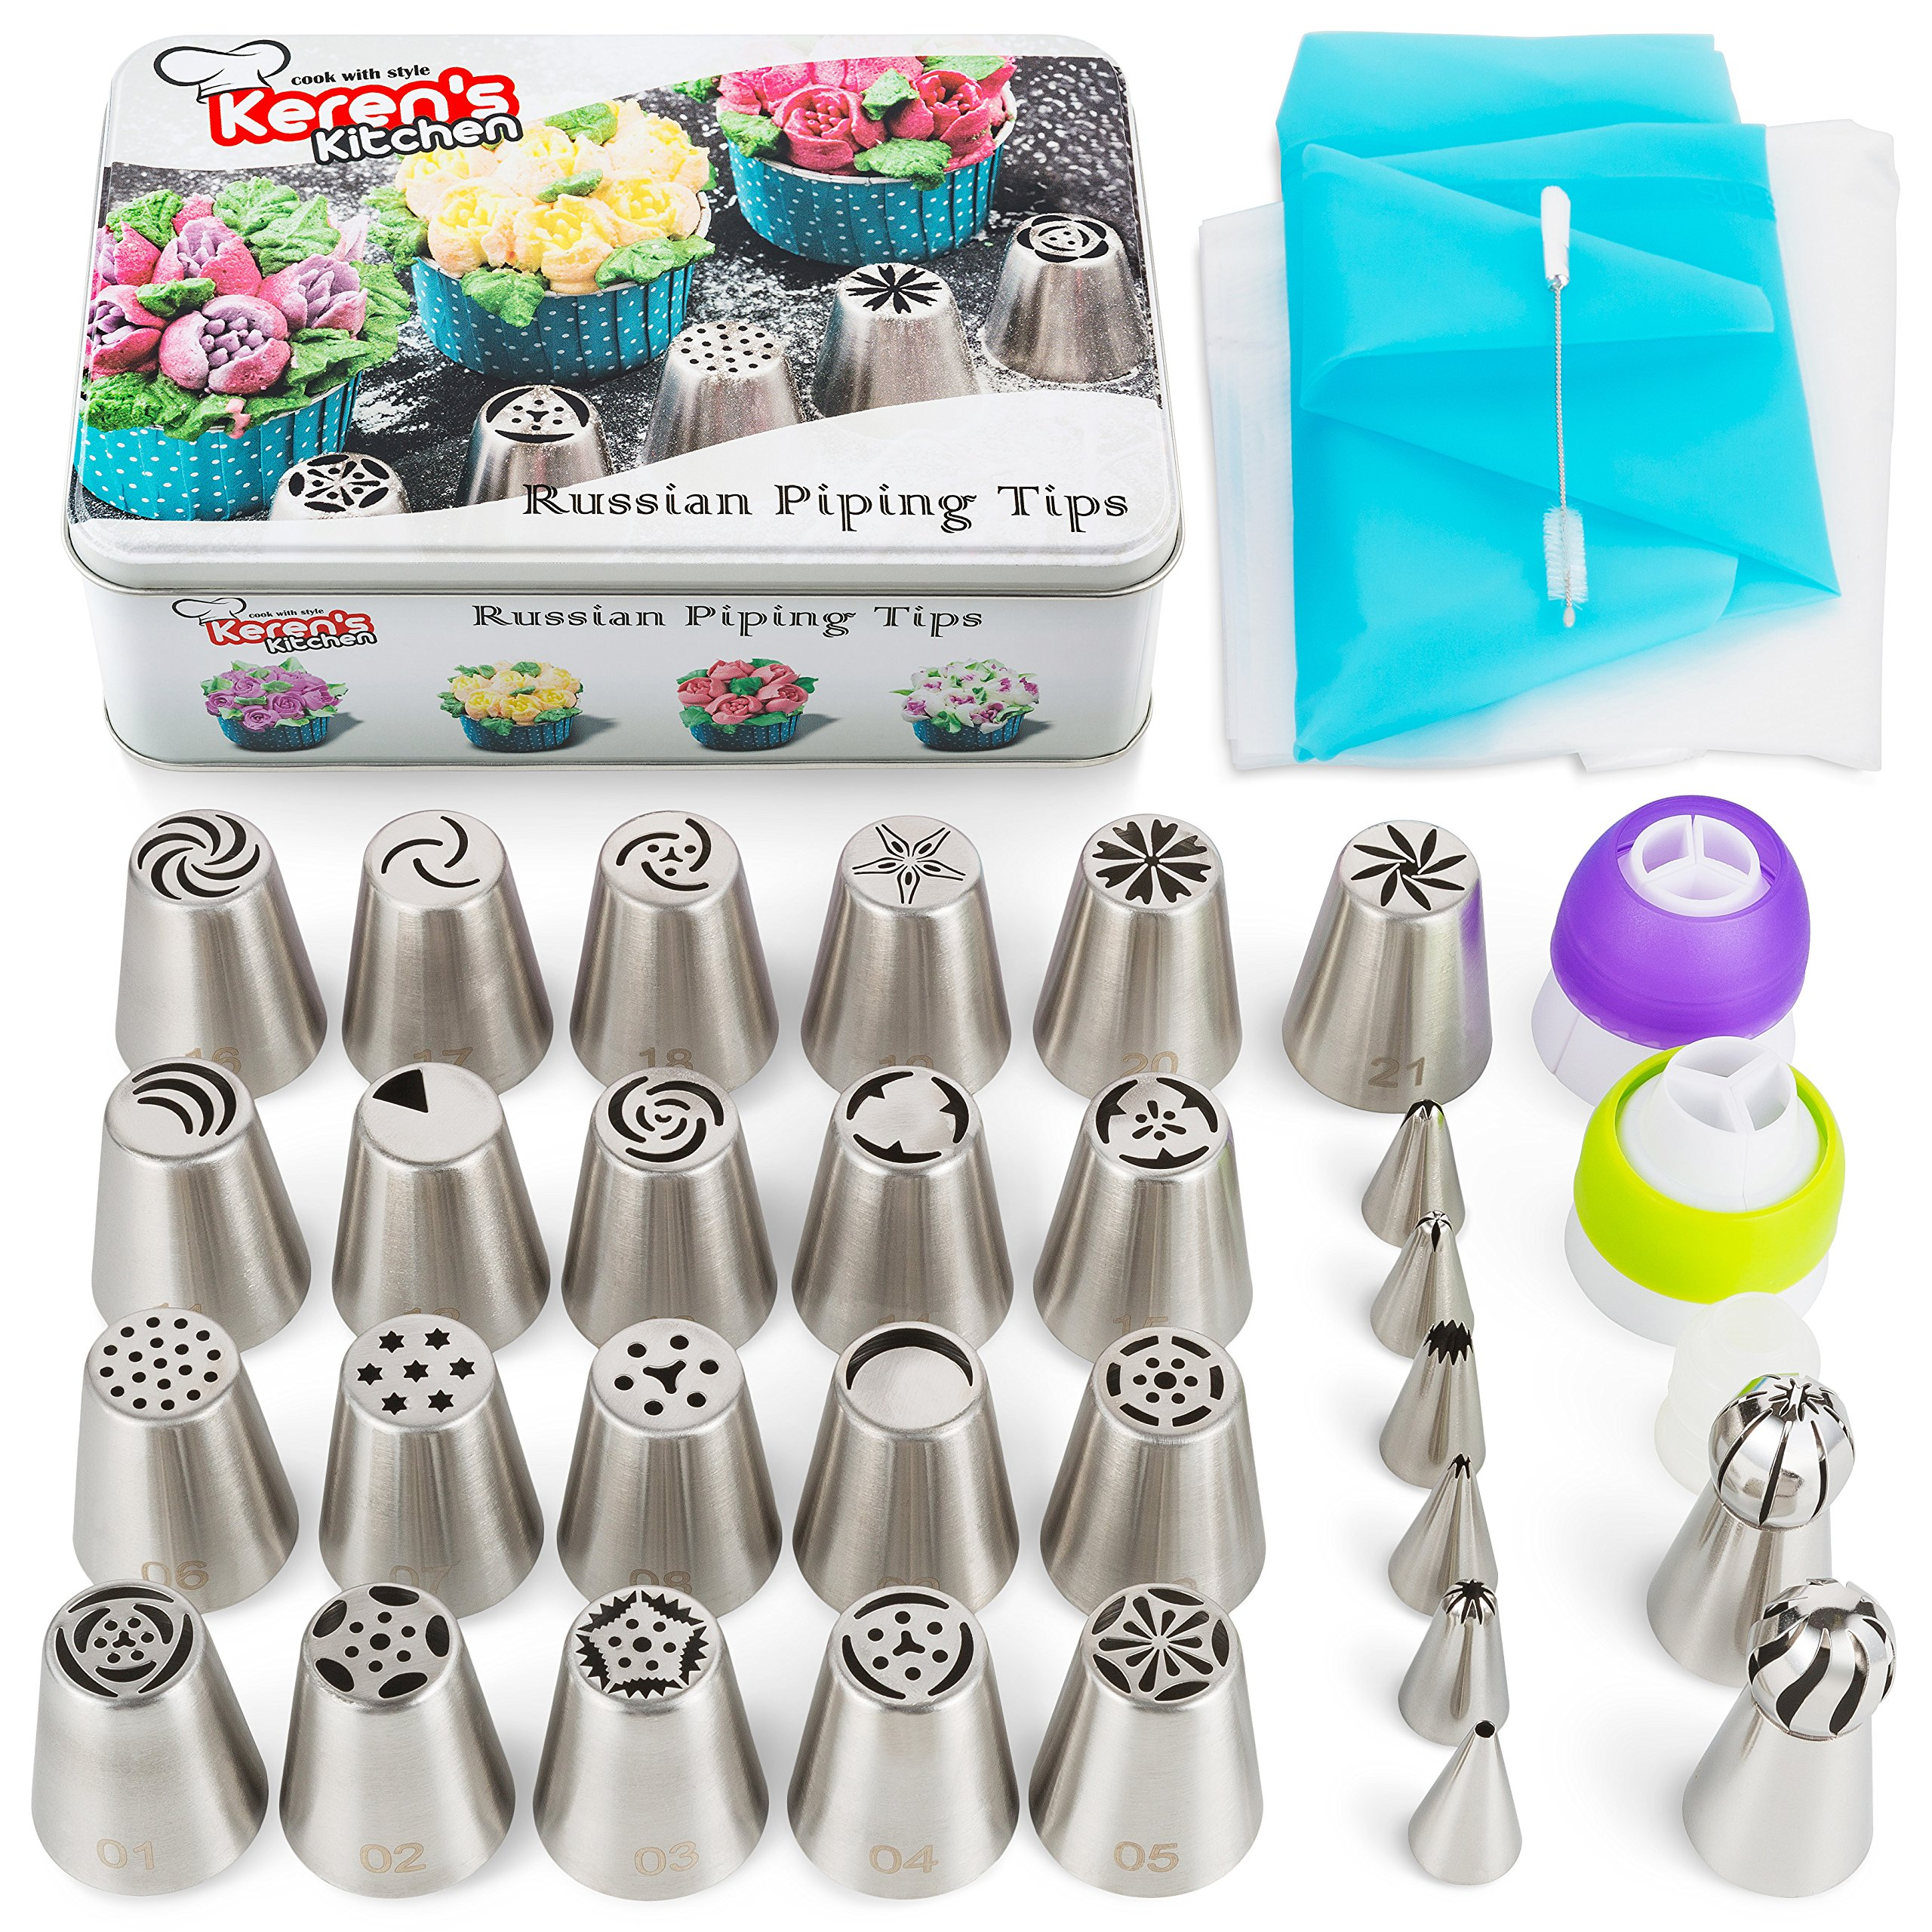 Russian Piping Tips Set 56 pcs Russian Flower Tips Cake. Include 21 Russian Cake Tips, Russian Ball Frosting Tips, Icing Tips Nozzles, Couplers. Best Cake Decorating Tips